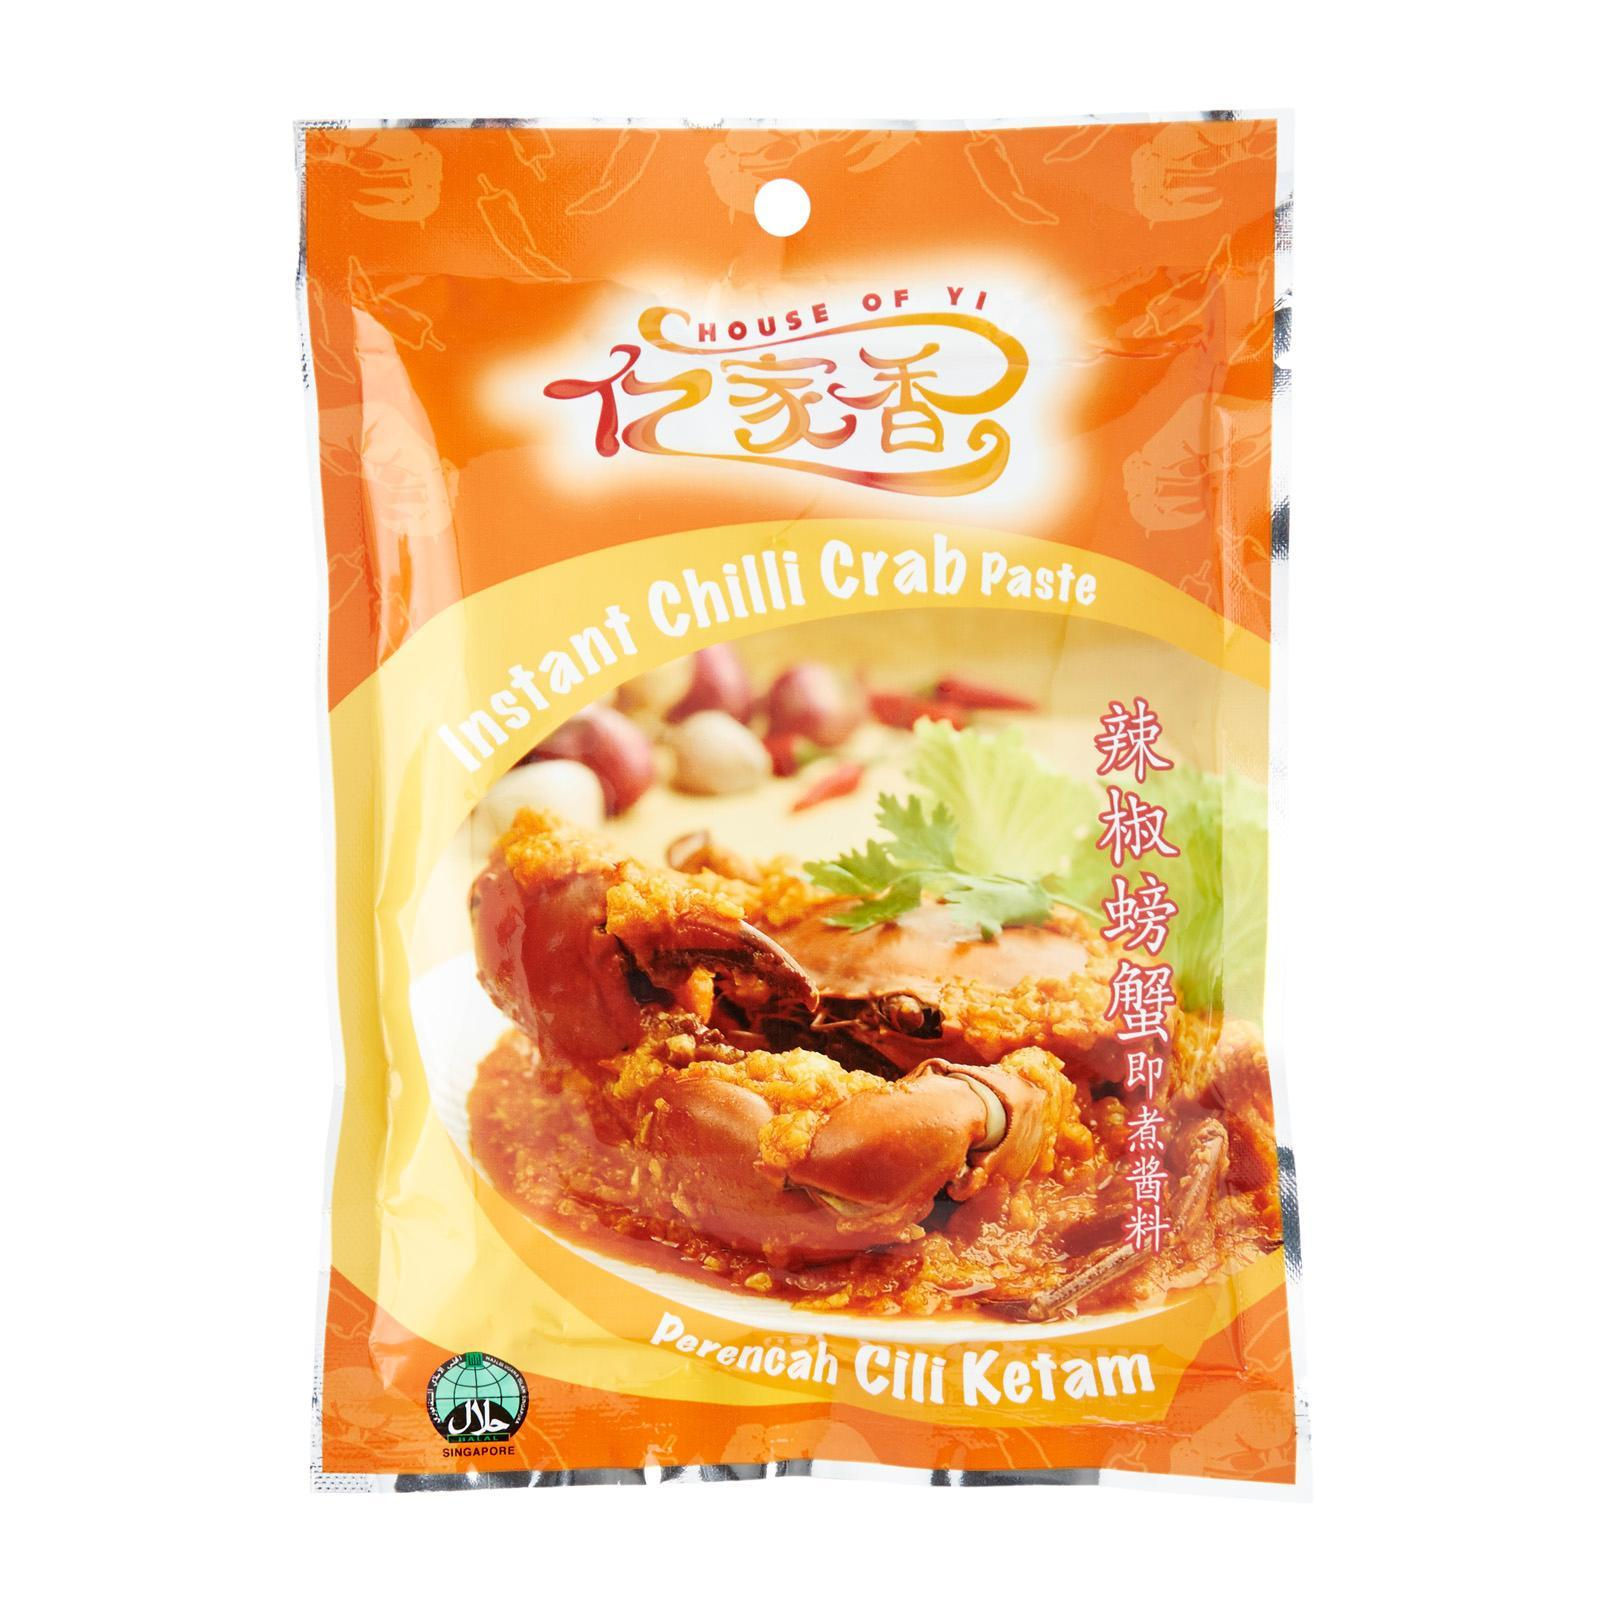 House Of Yi Instant Chilli Crab Paste - By FOOD SERVICE